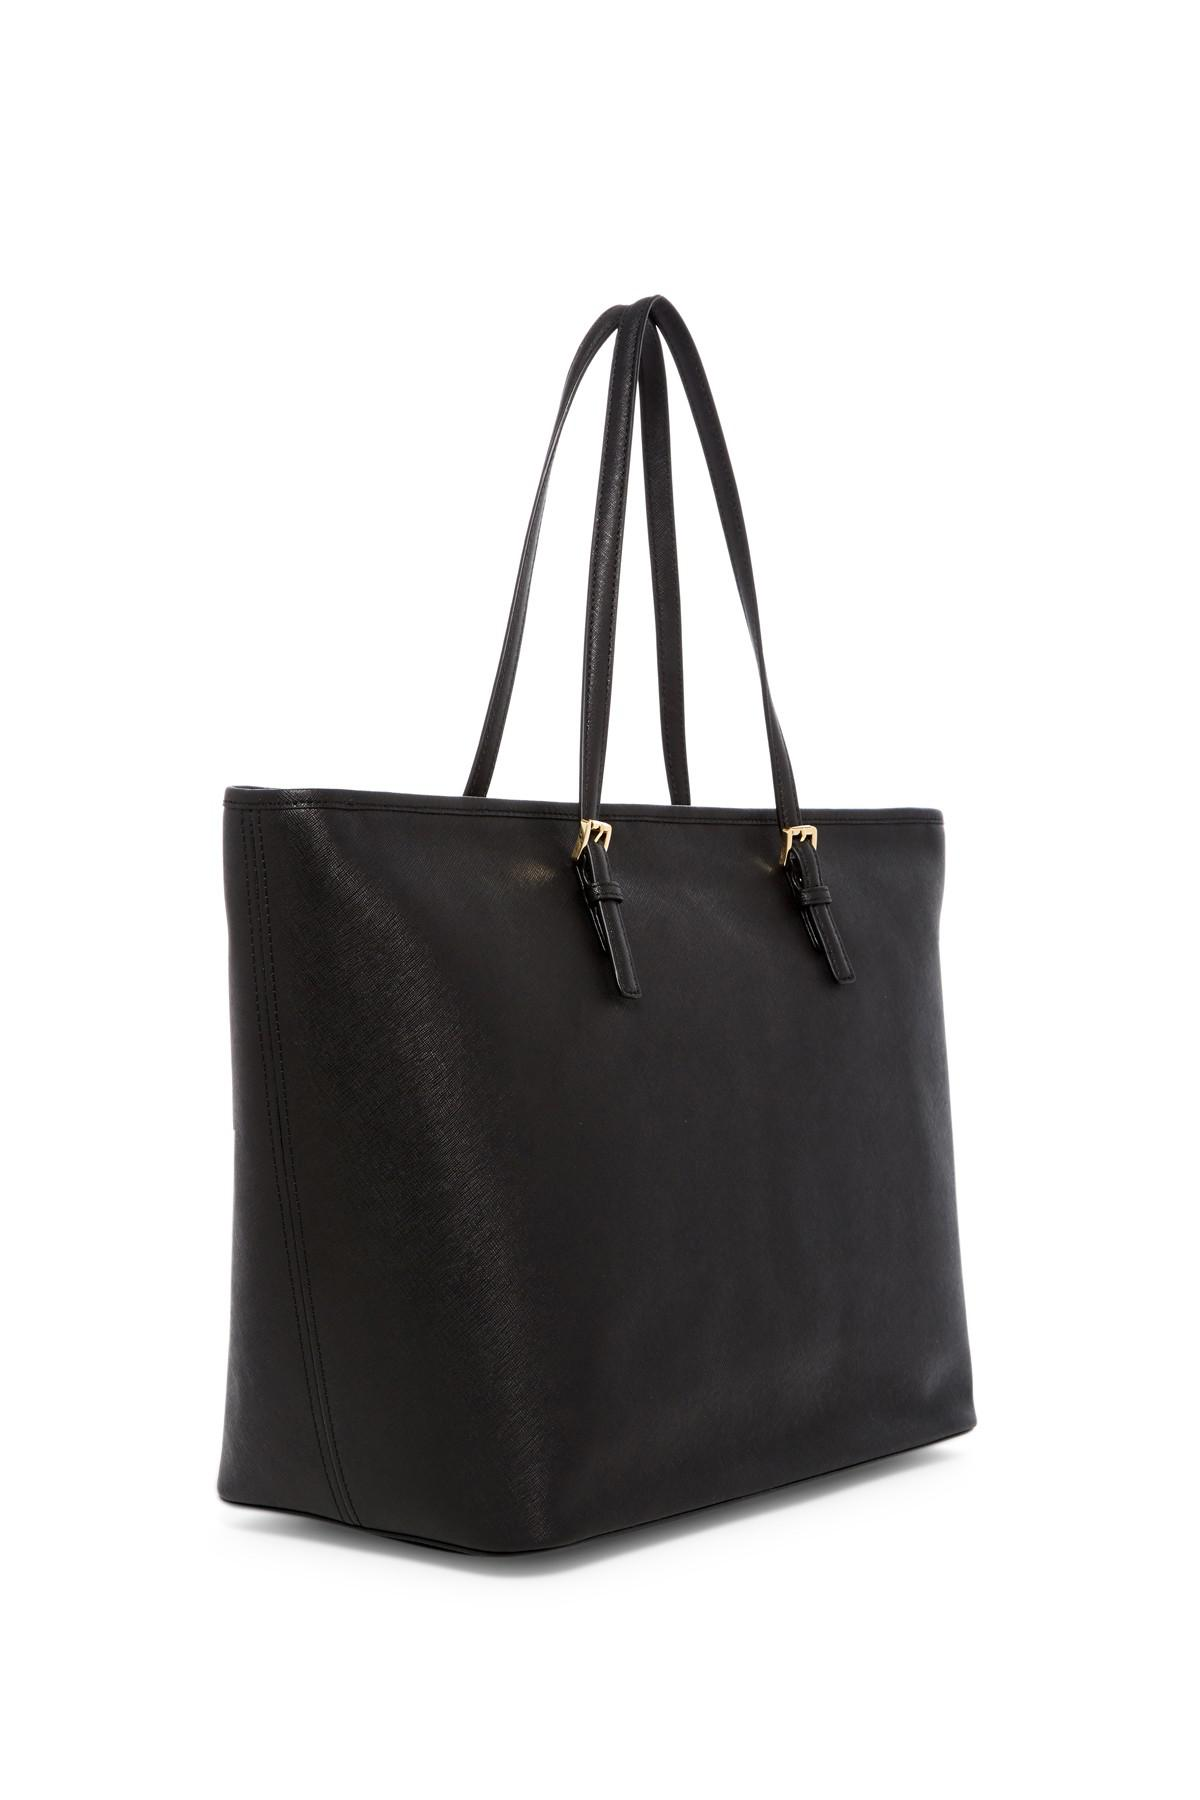 7f9104d21f54 MICHAEL Michael Kors Jet Set Extra Large Travel Tote in Black - Lyst